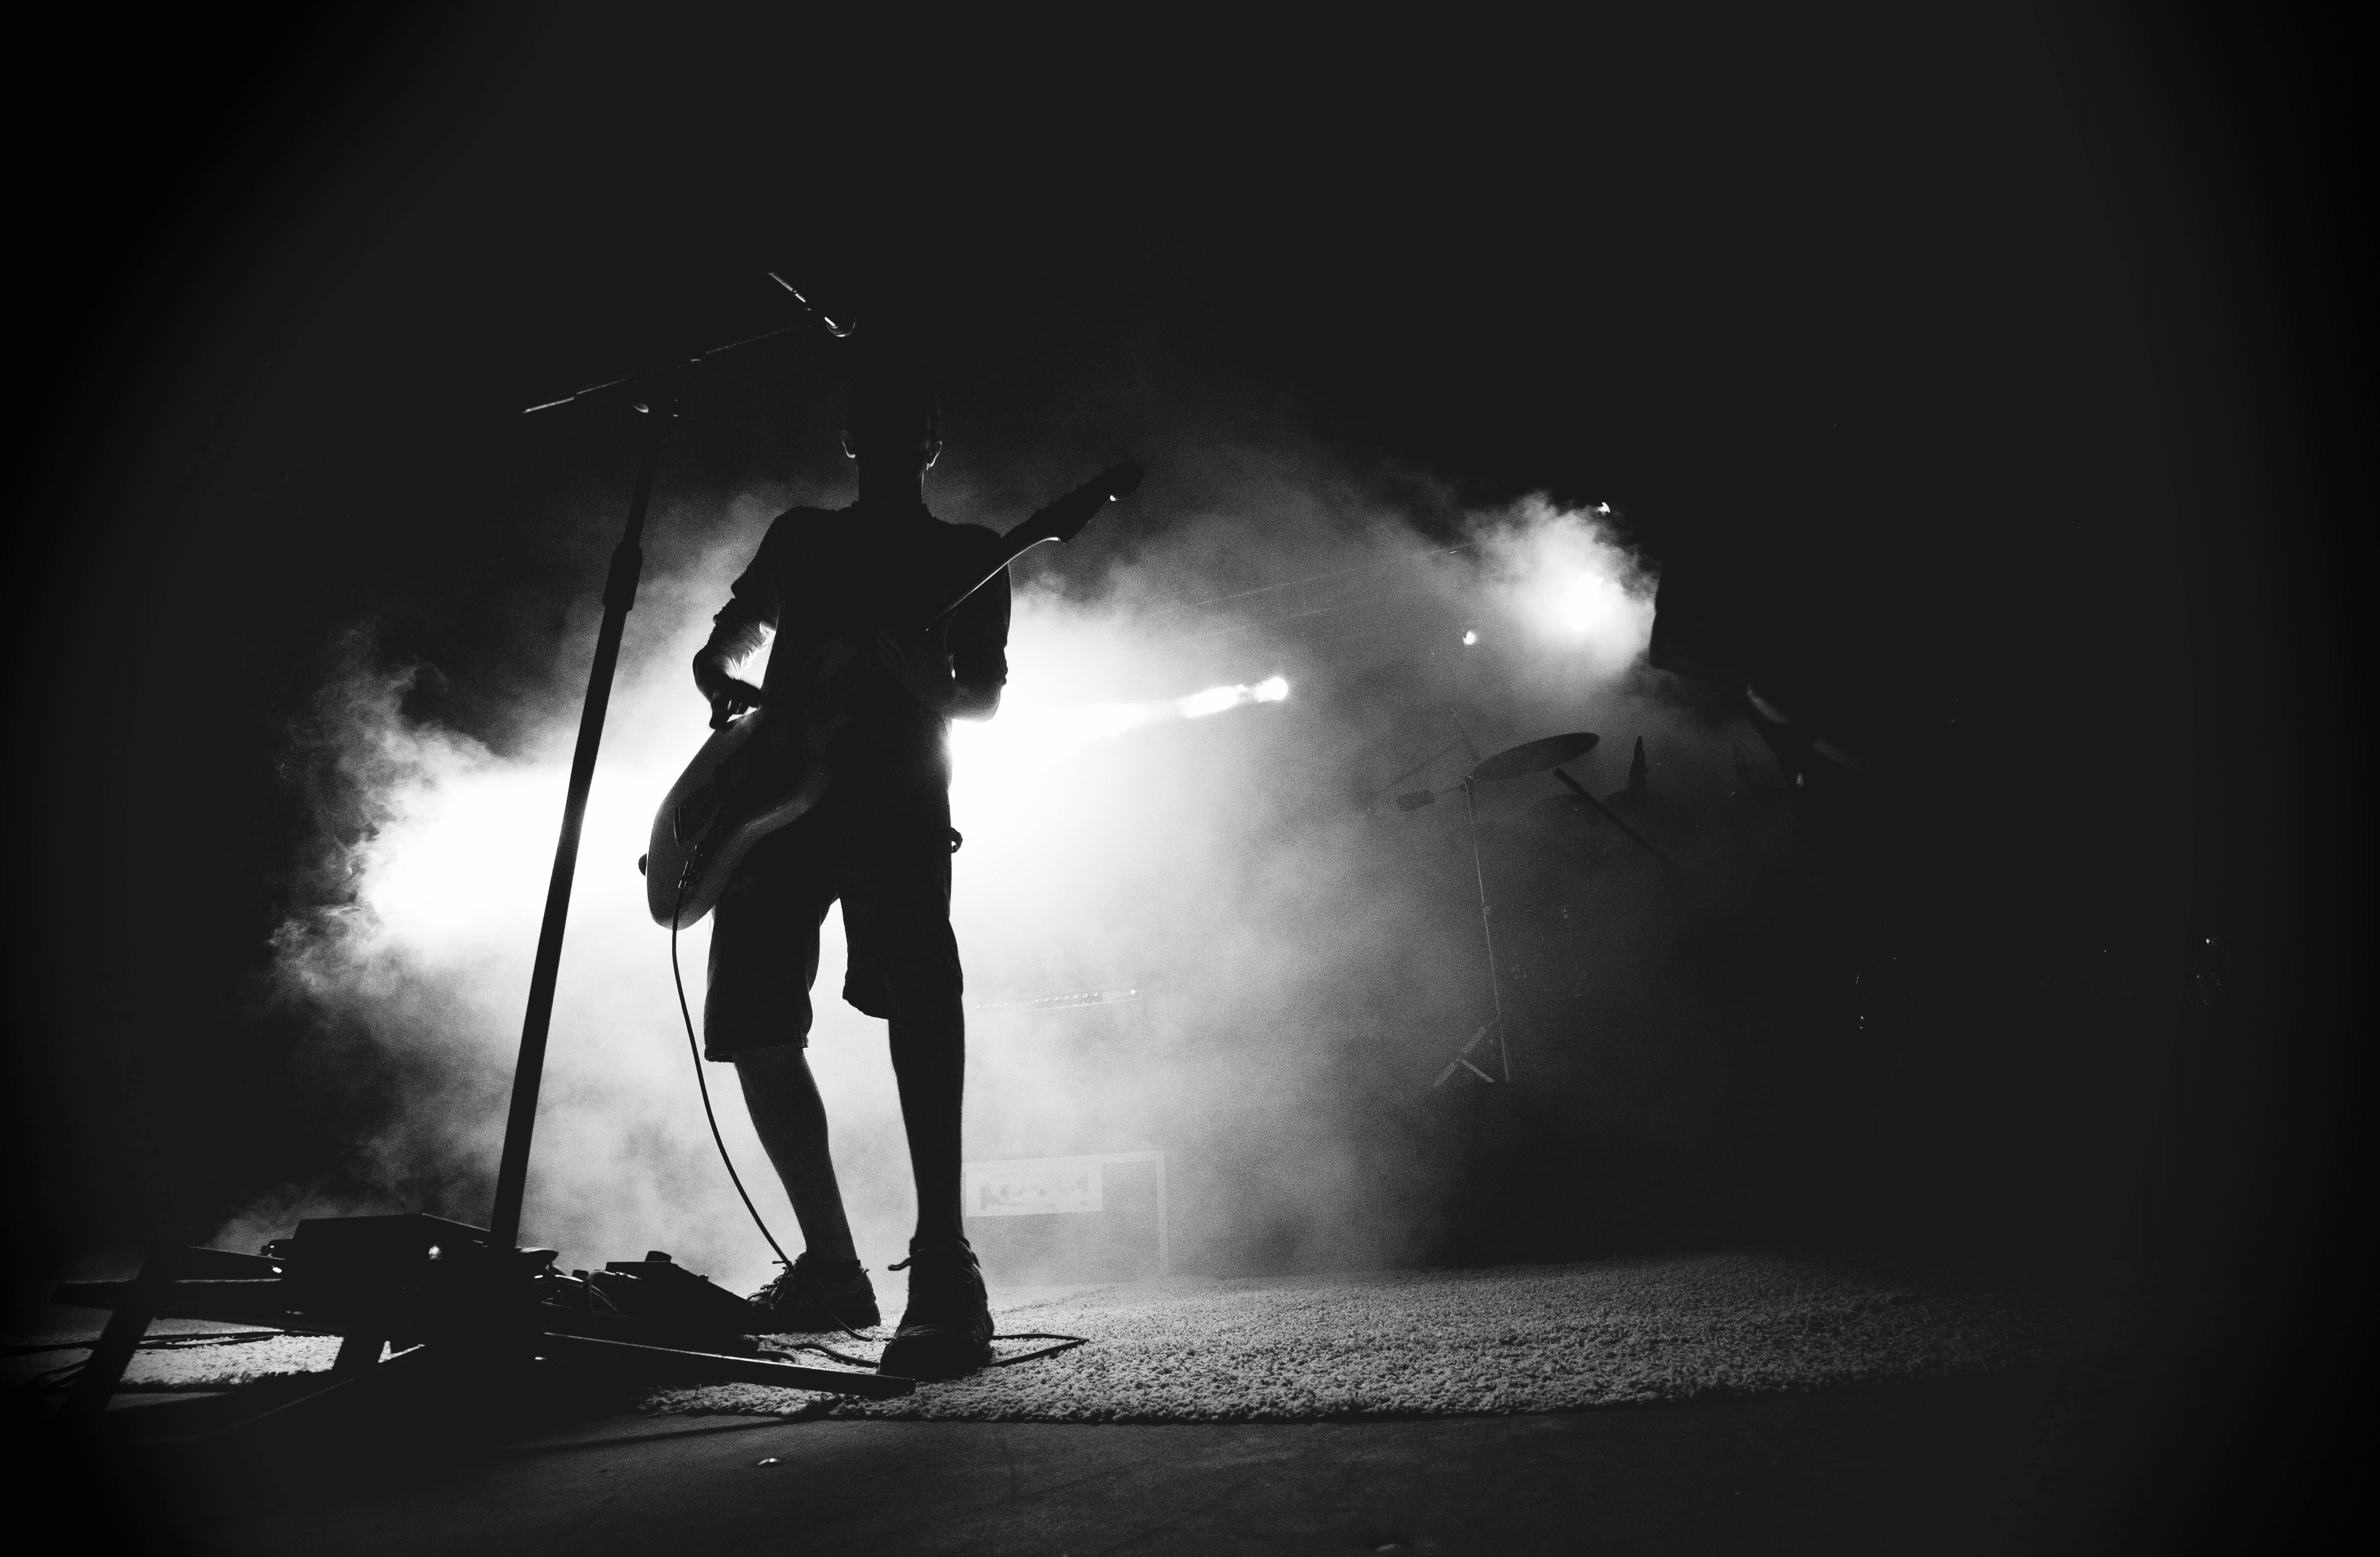 Person playing guitar on stage